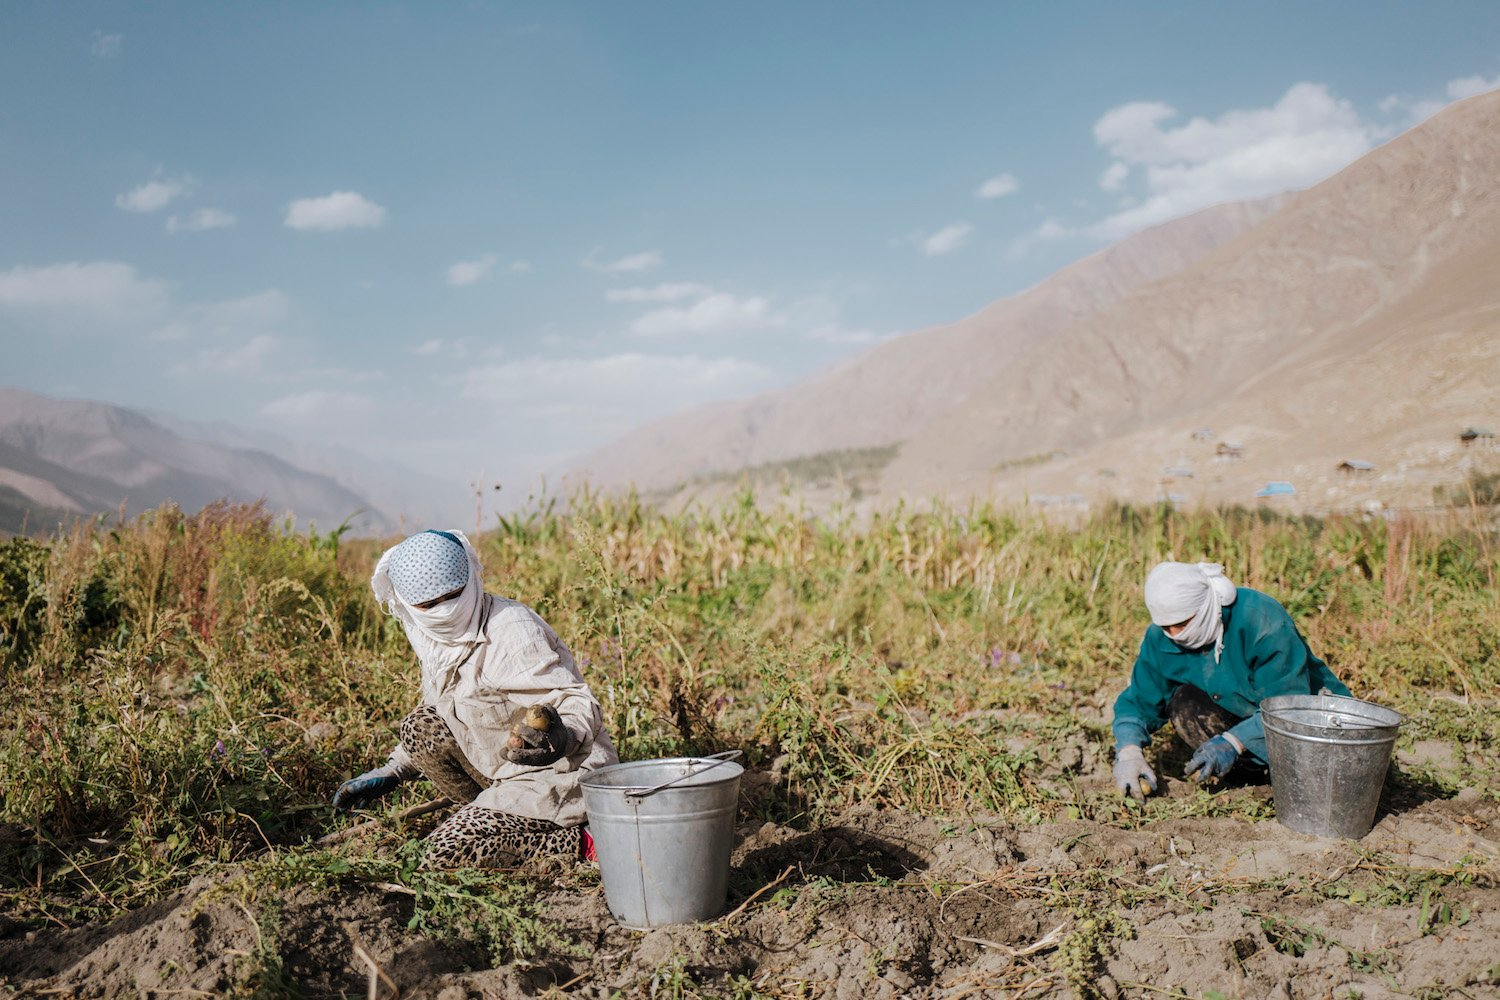 Harvesting in the Pamir Mountains